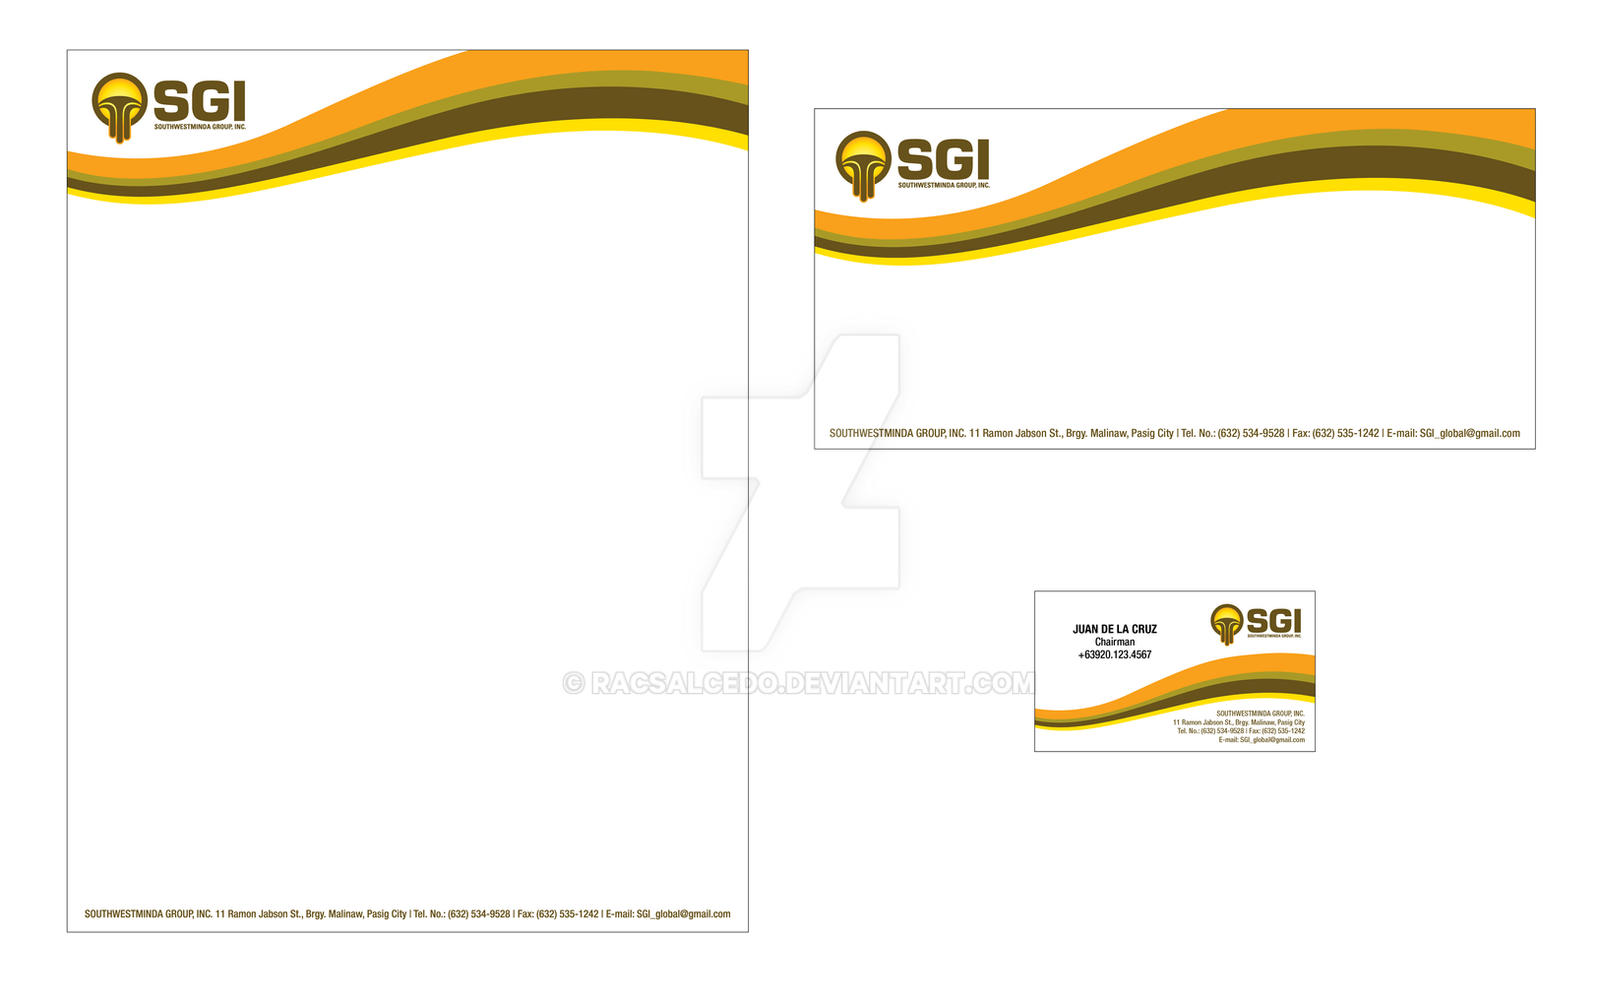 SGI Letterhead, Envelope, Business Card by racsalcedo on DeviantArt